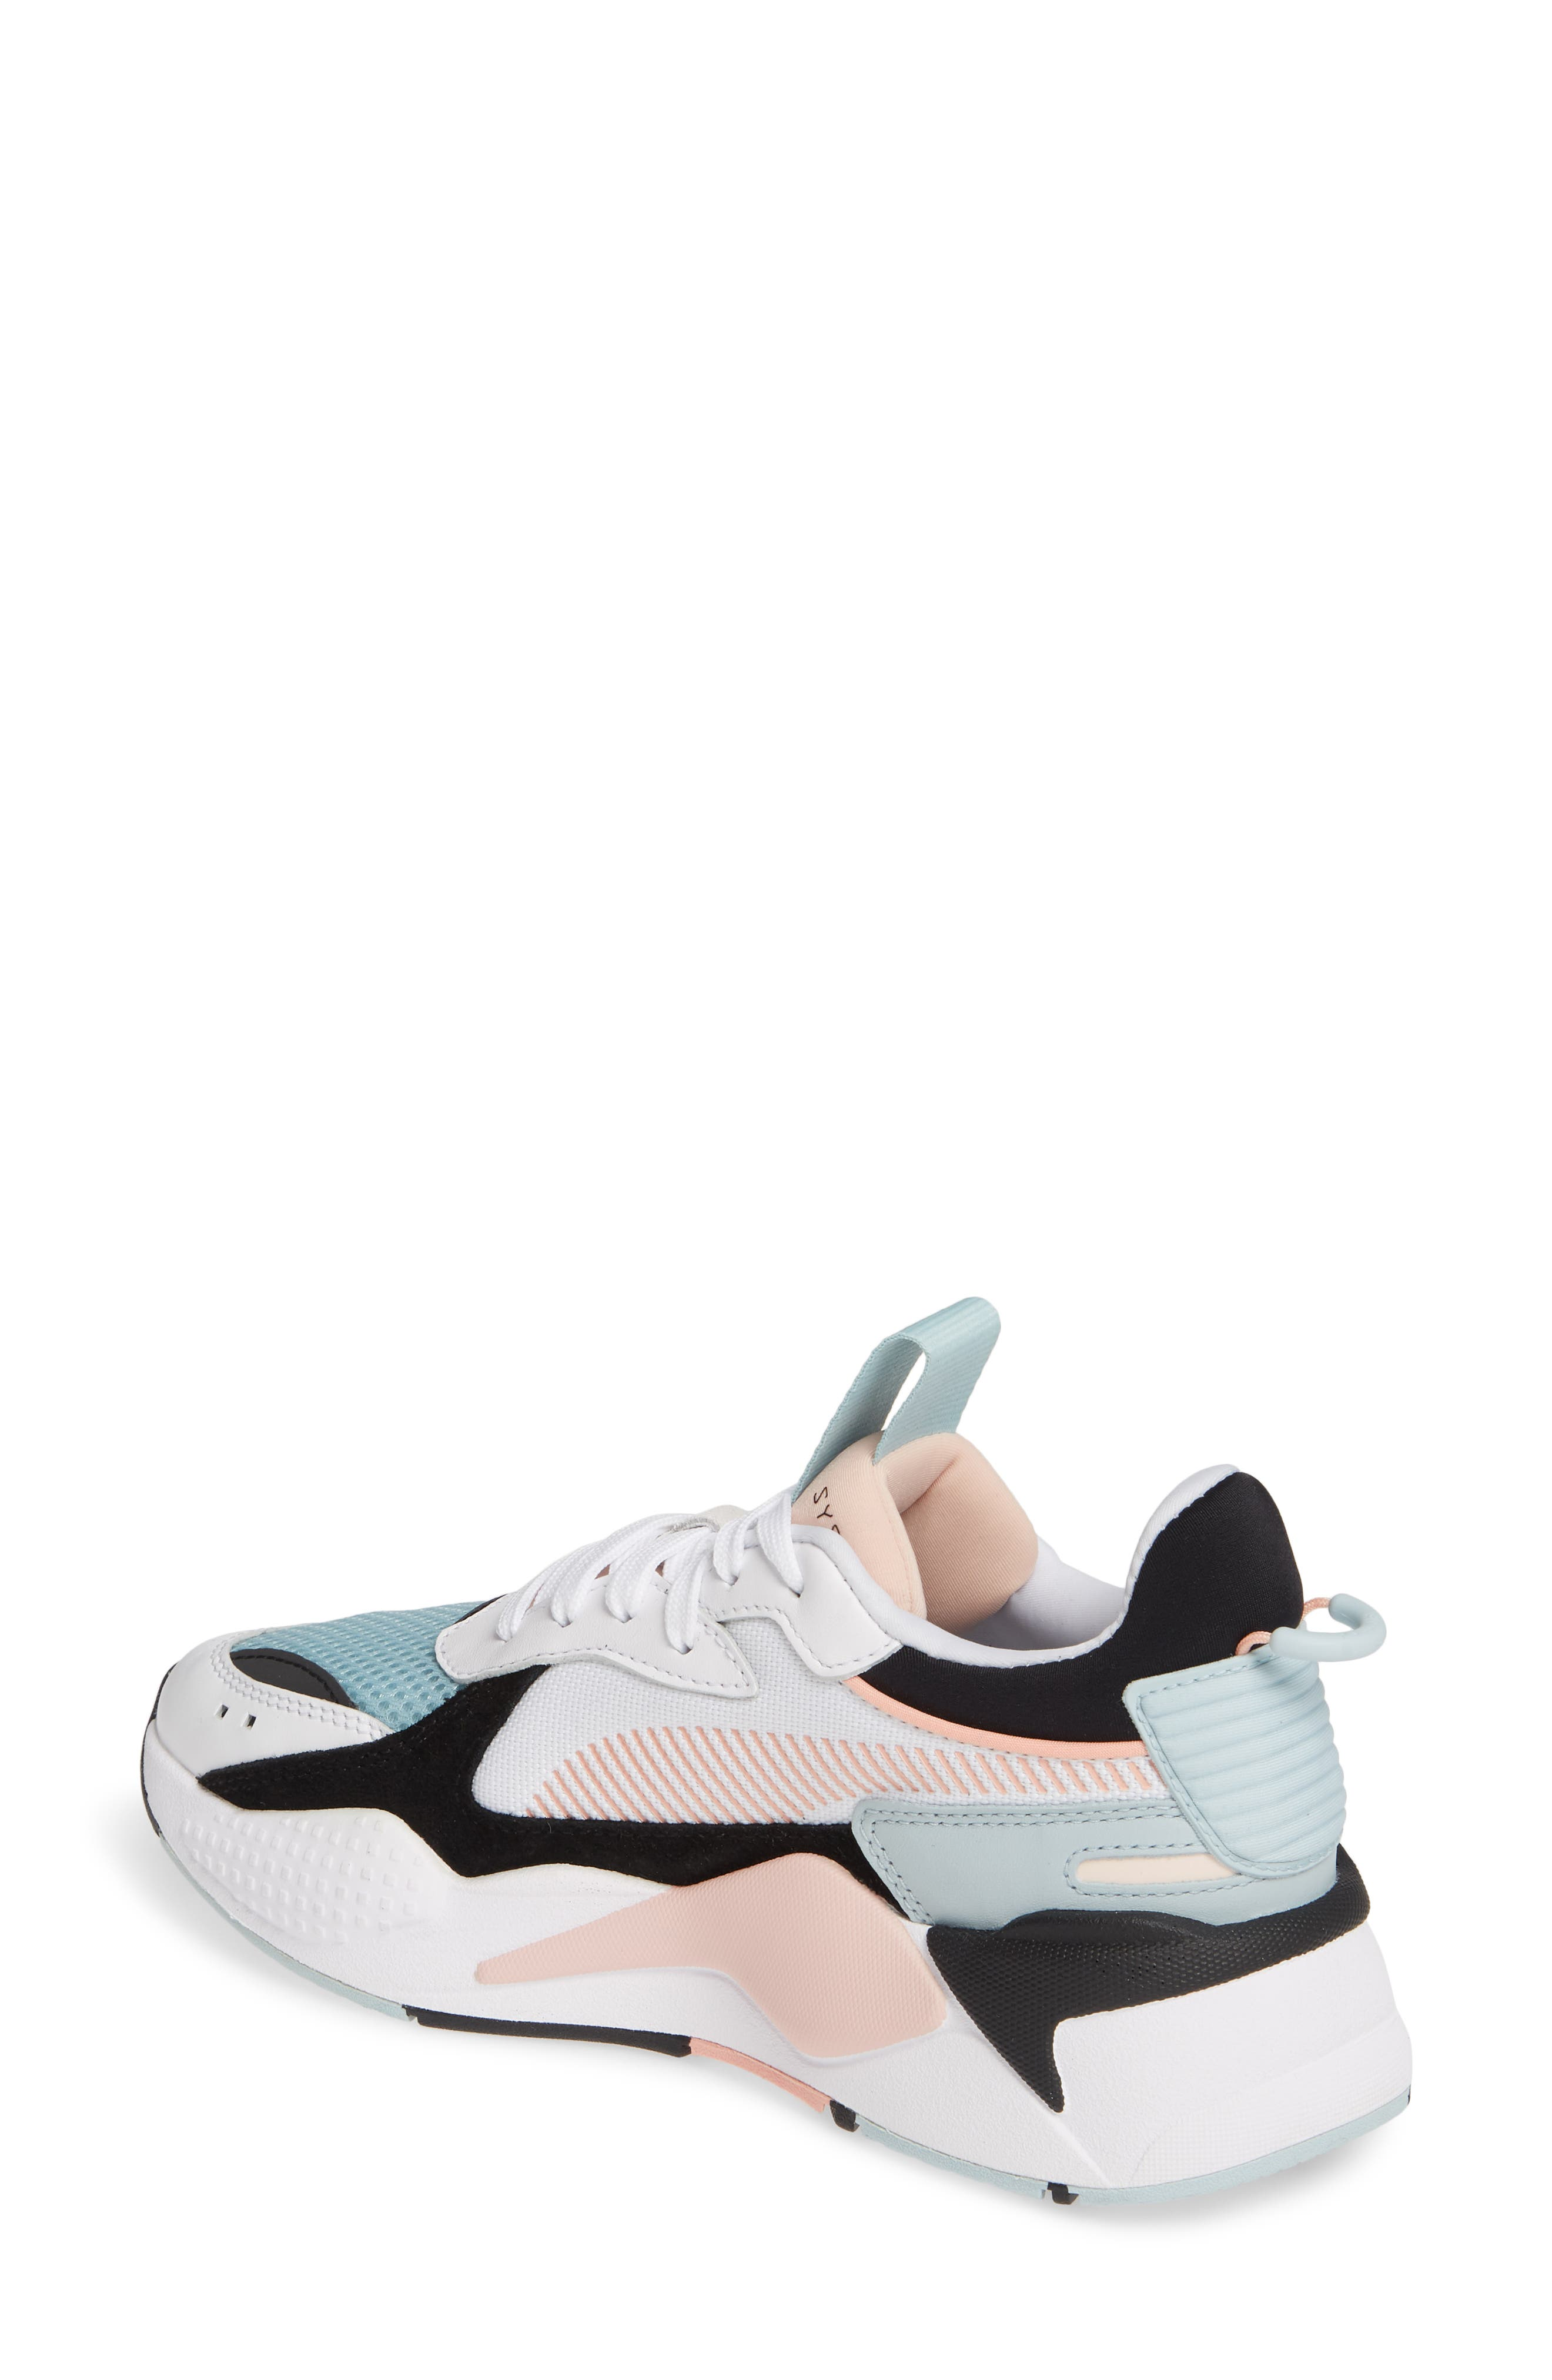 PUMA, RS-X Reinvention Sneaker, Alternate thumbnail 2, color, 100